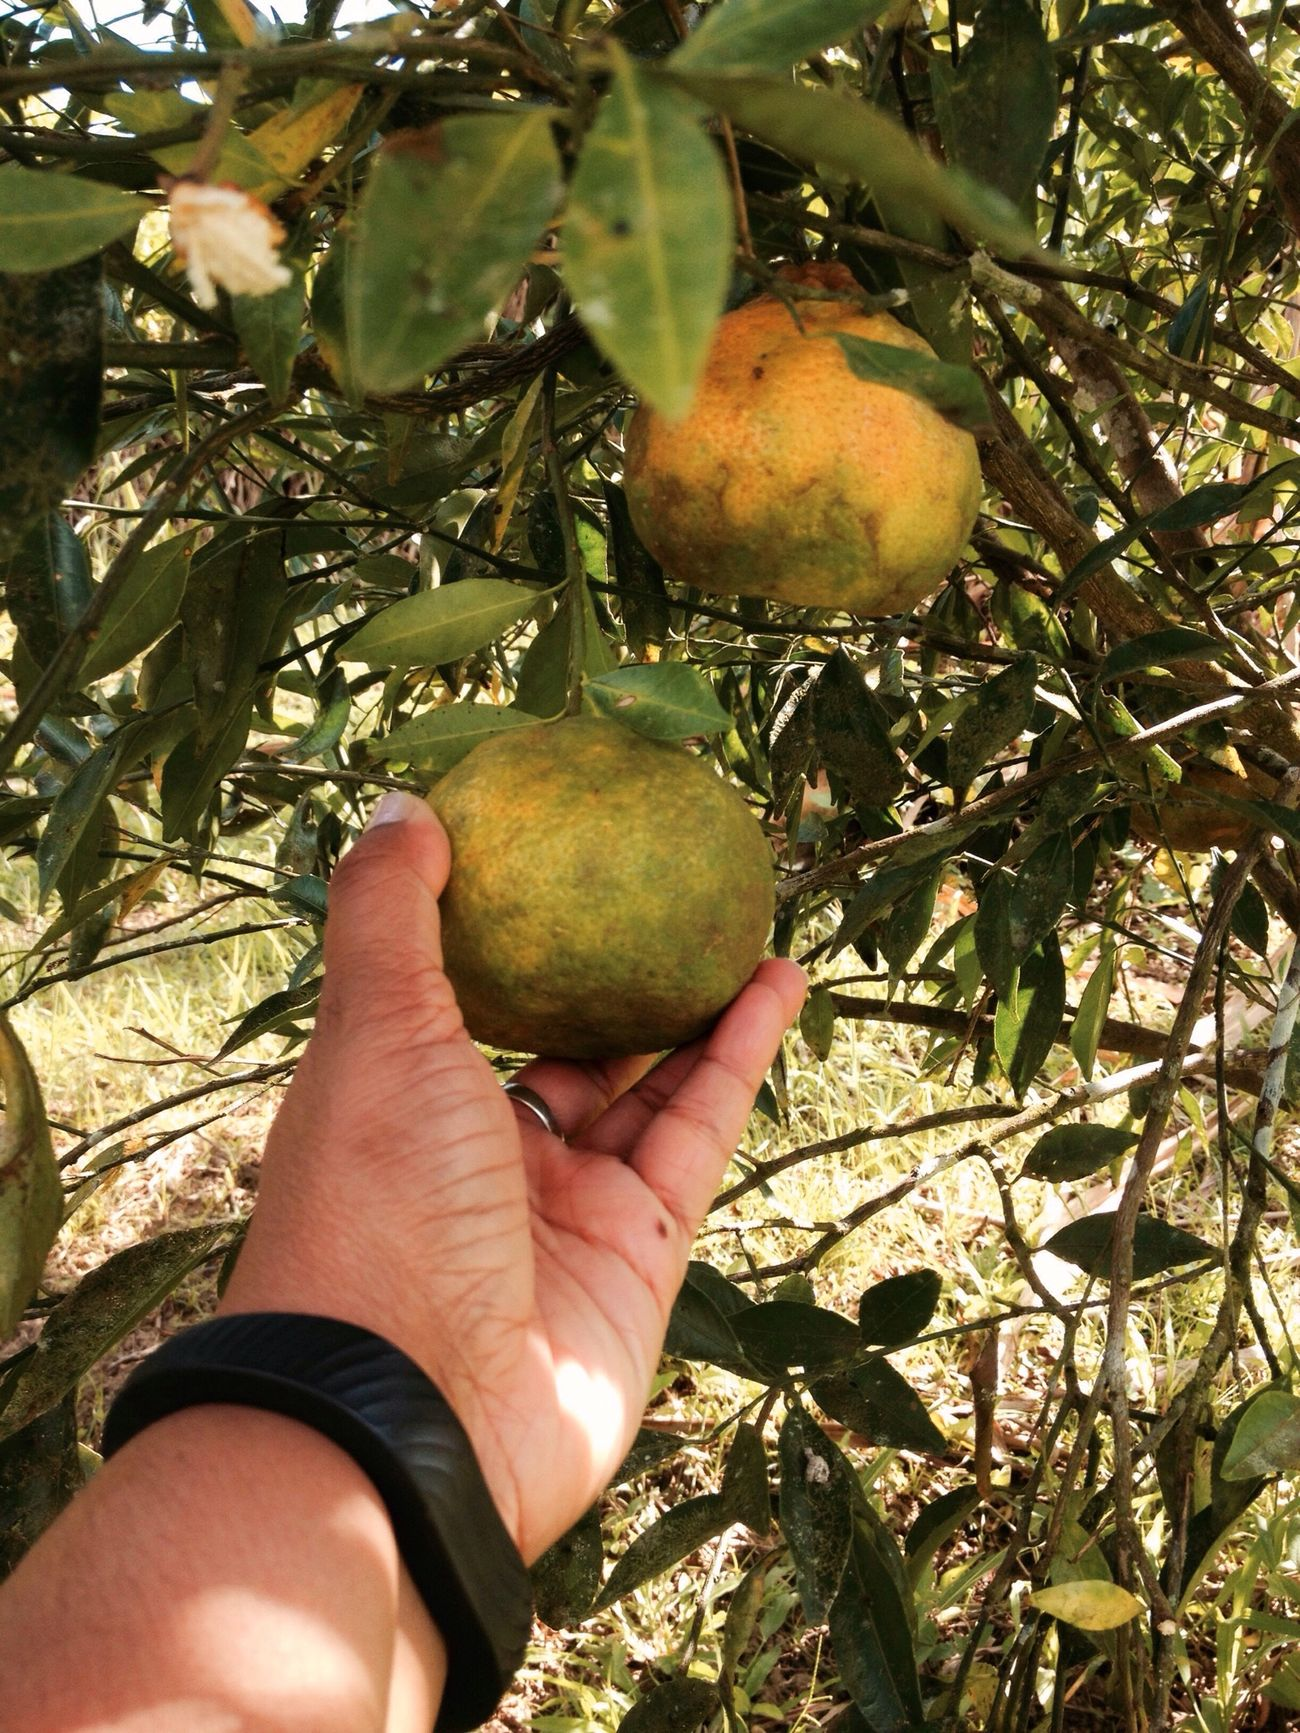 Picking Portugal's from mum's garden on February 2, 2015 in Mendez Village, Siparia, Trinidad. #LifeInAVillage #citrus